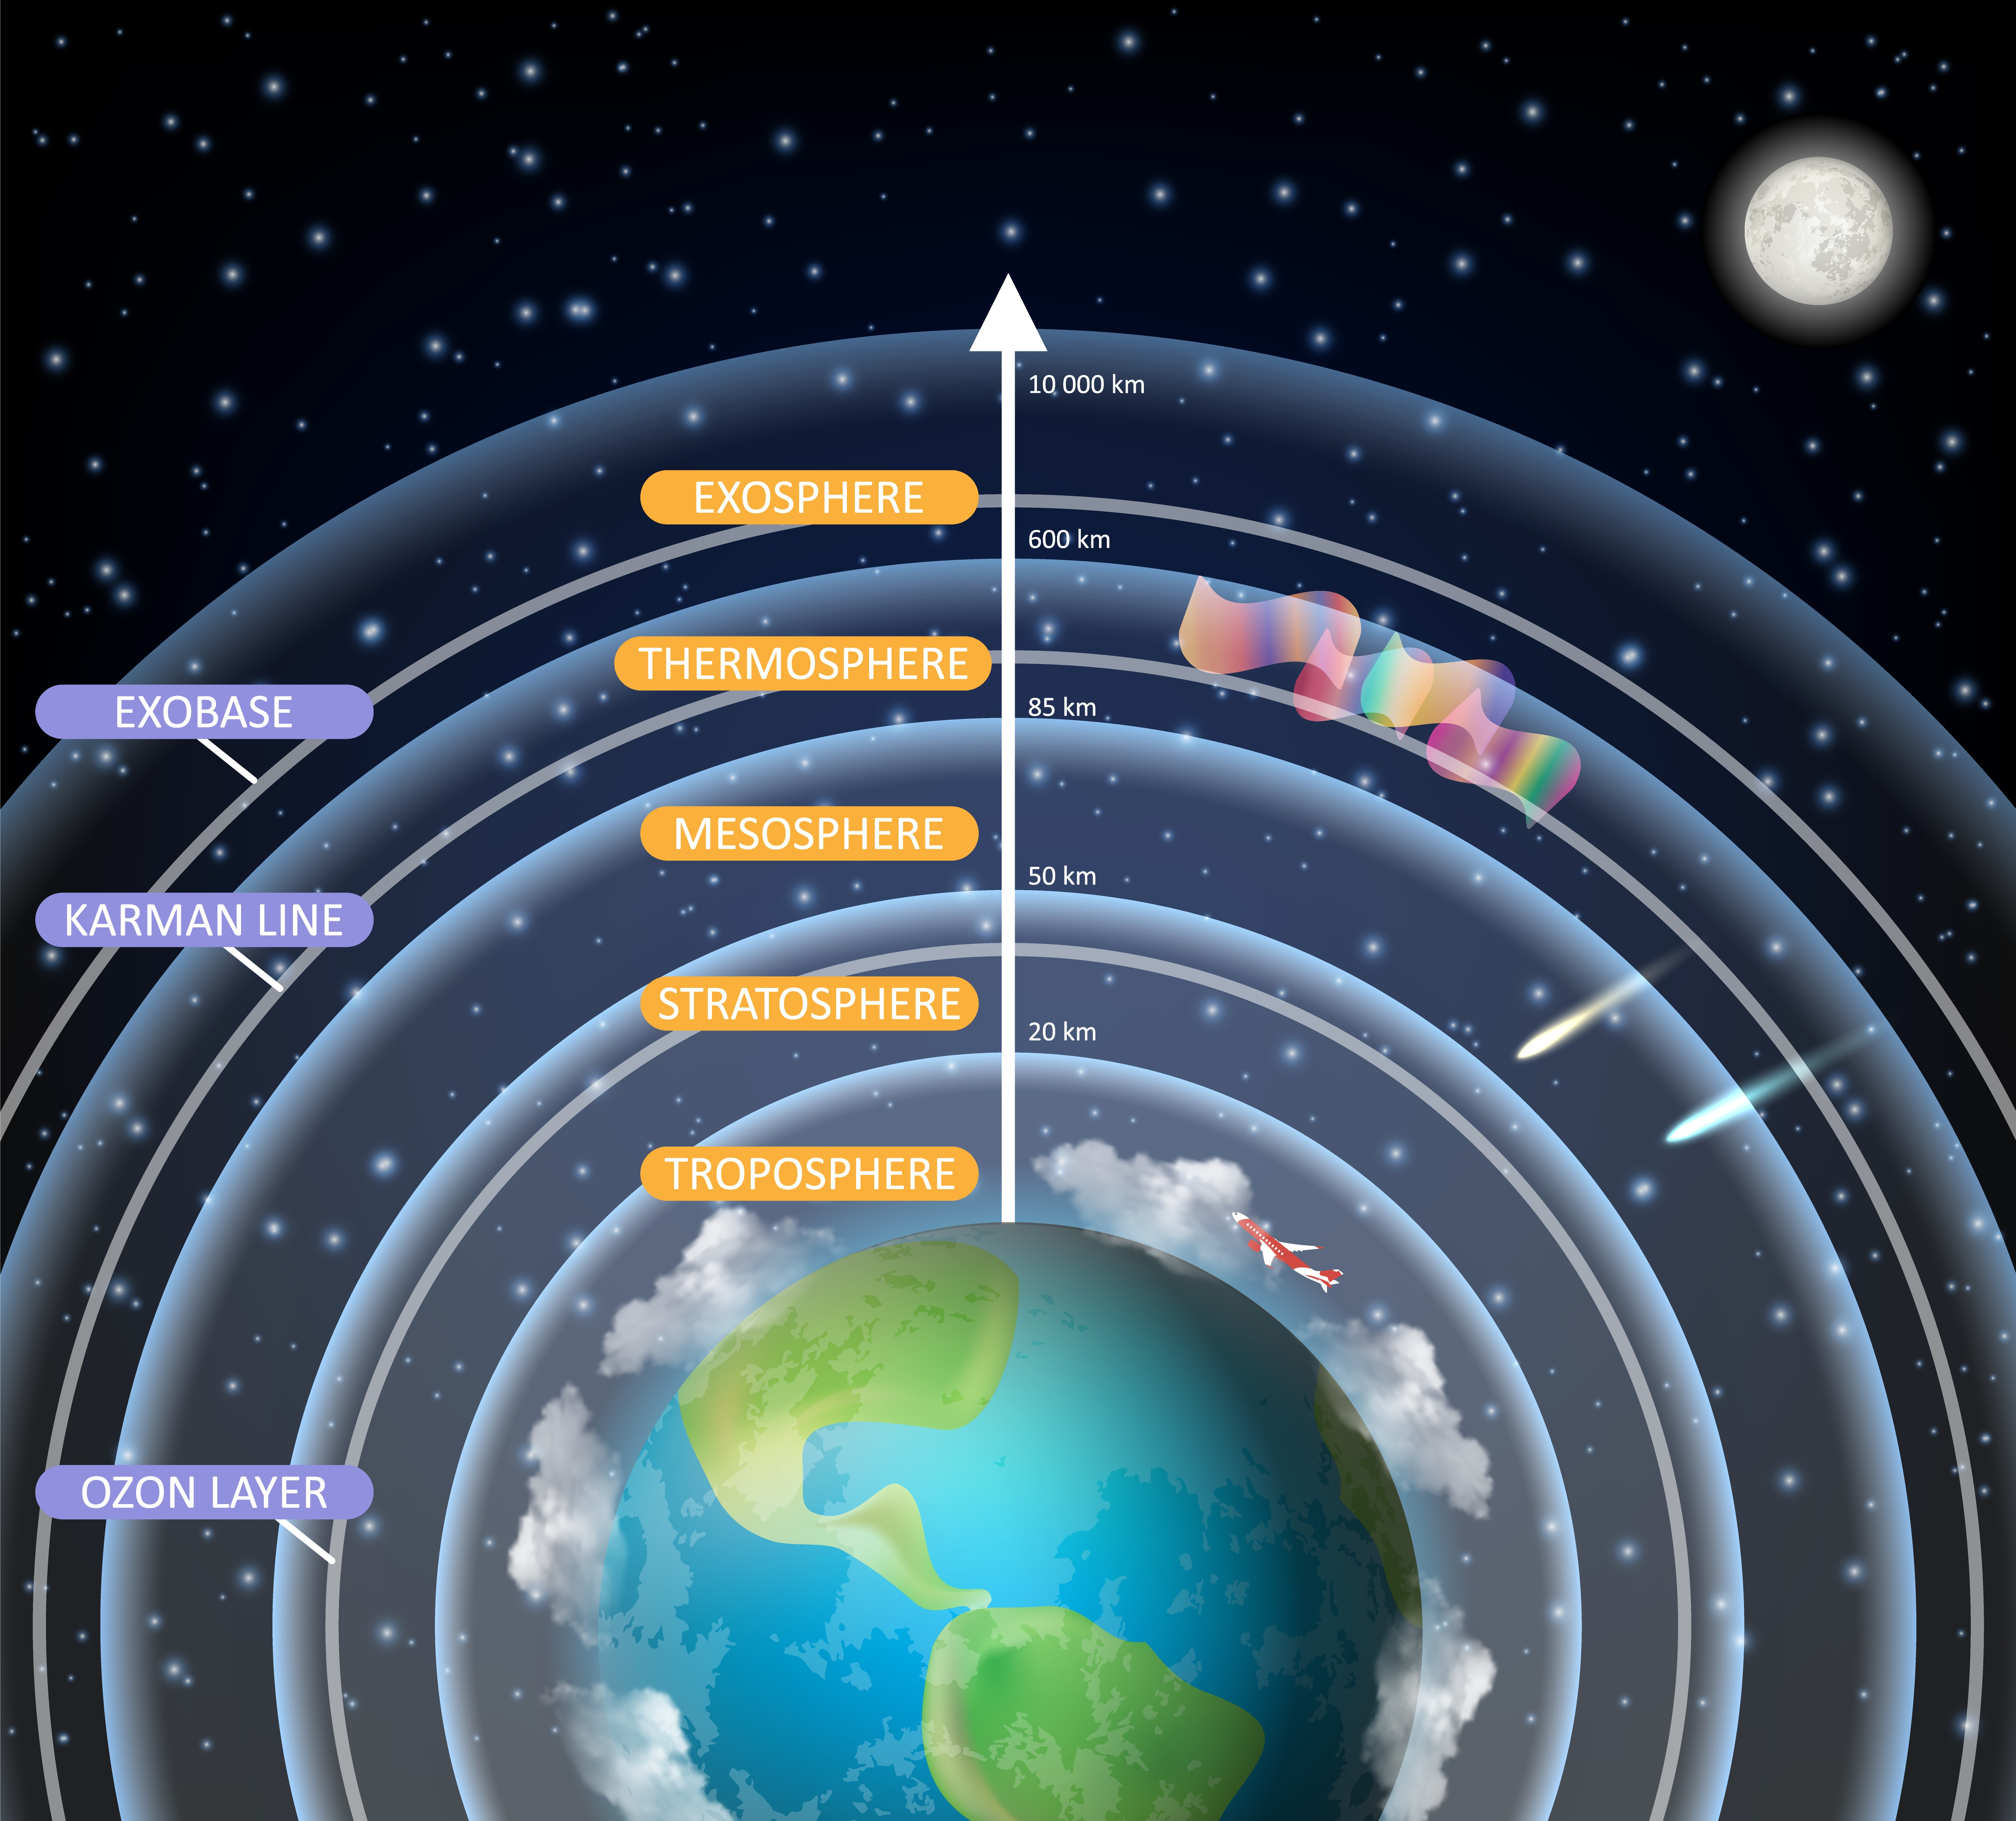 NASA launches ICON Mission to study Earth's ionosphere